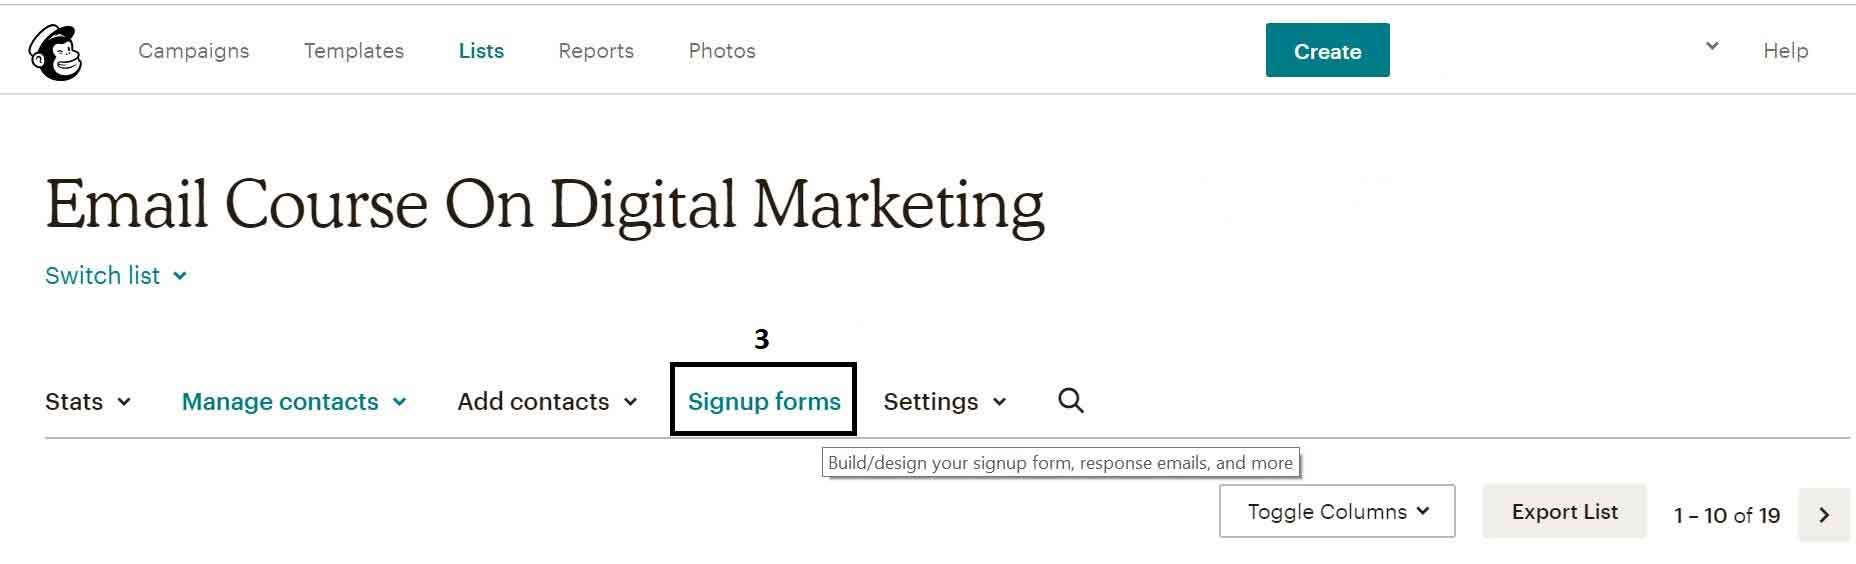 sign up forms on mailchimp